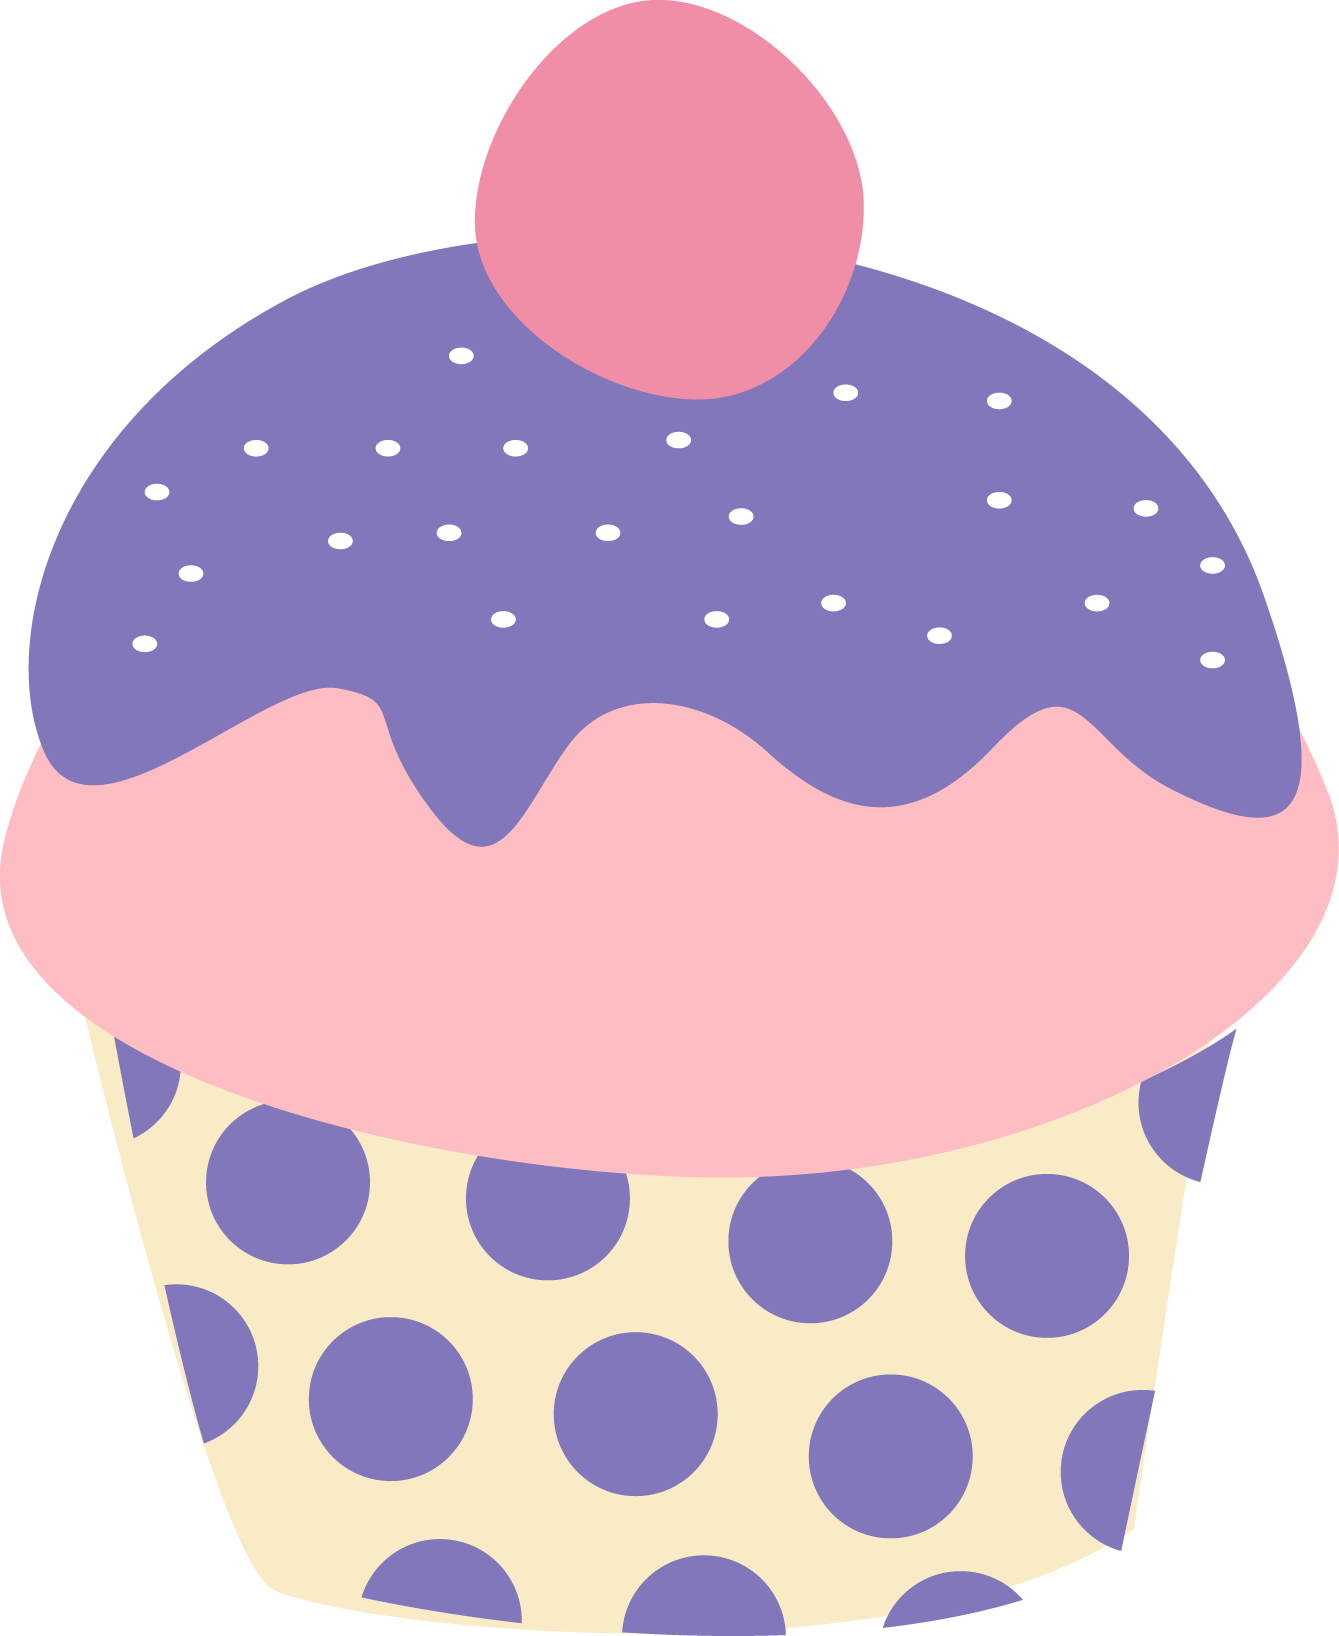 Clipart cupcake september. Photo by danimfalcao minus